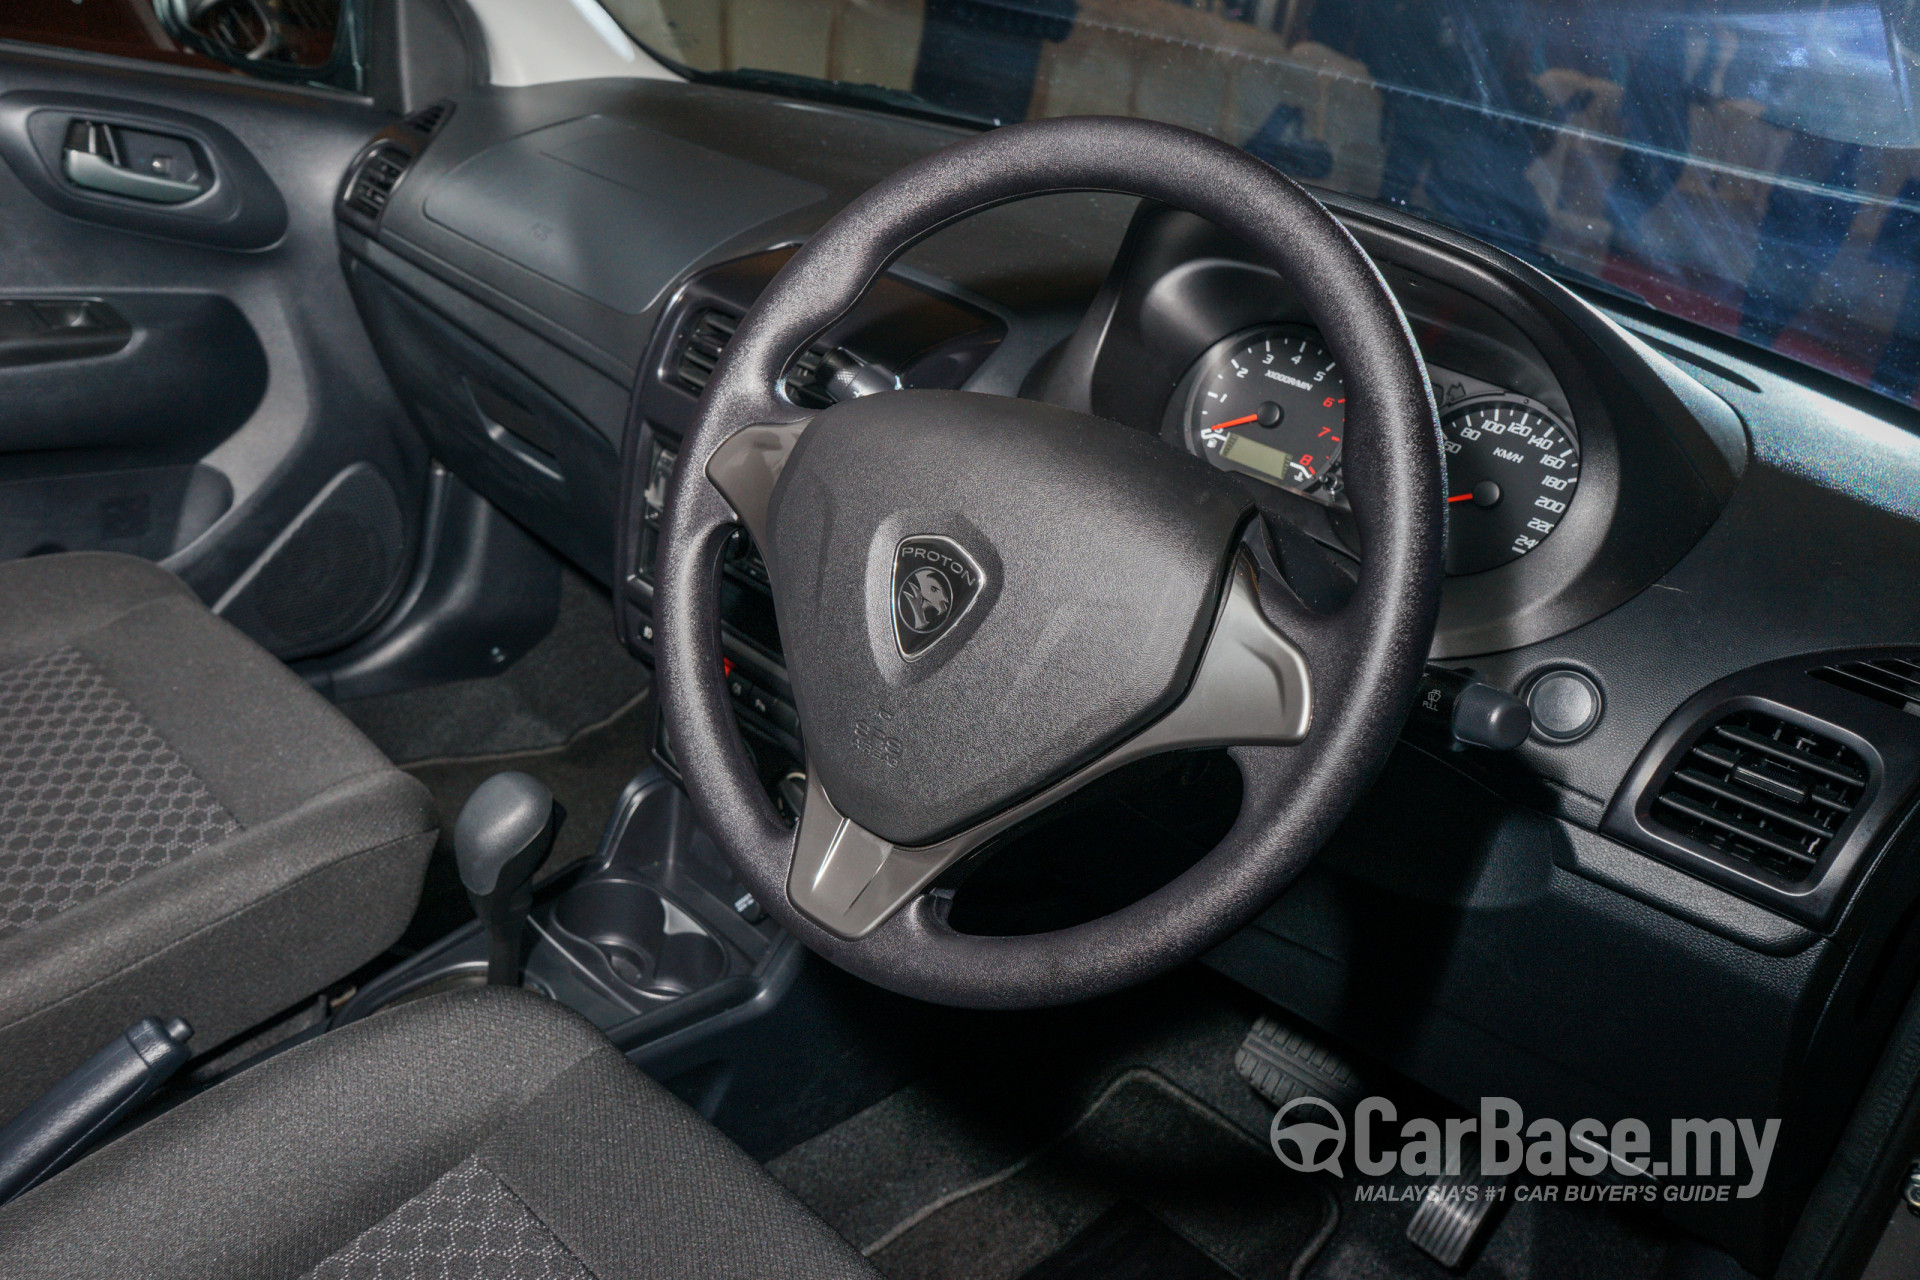 https://s1.carbase.my/upload/51/64/459/interior/s13-1475115822-1294-proton-saga.jpg